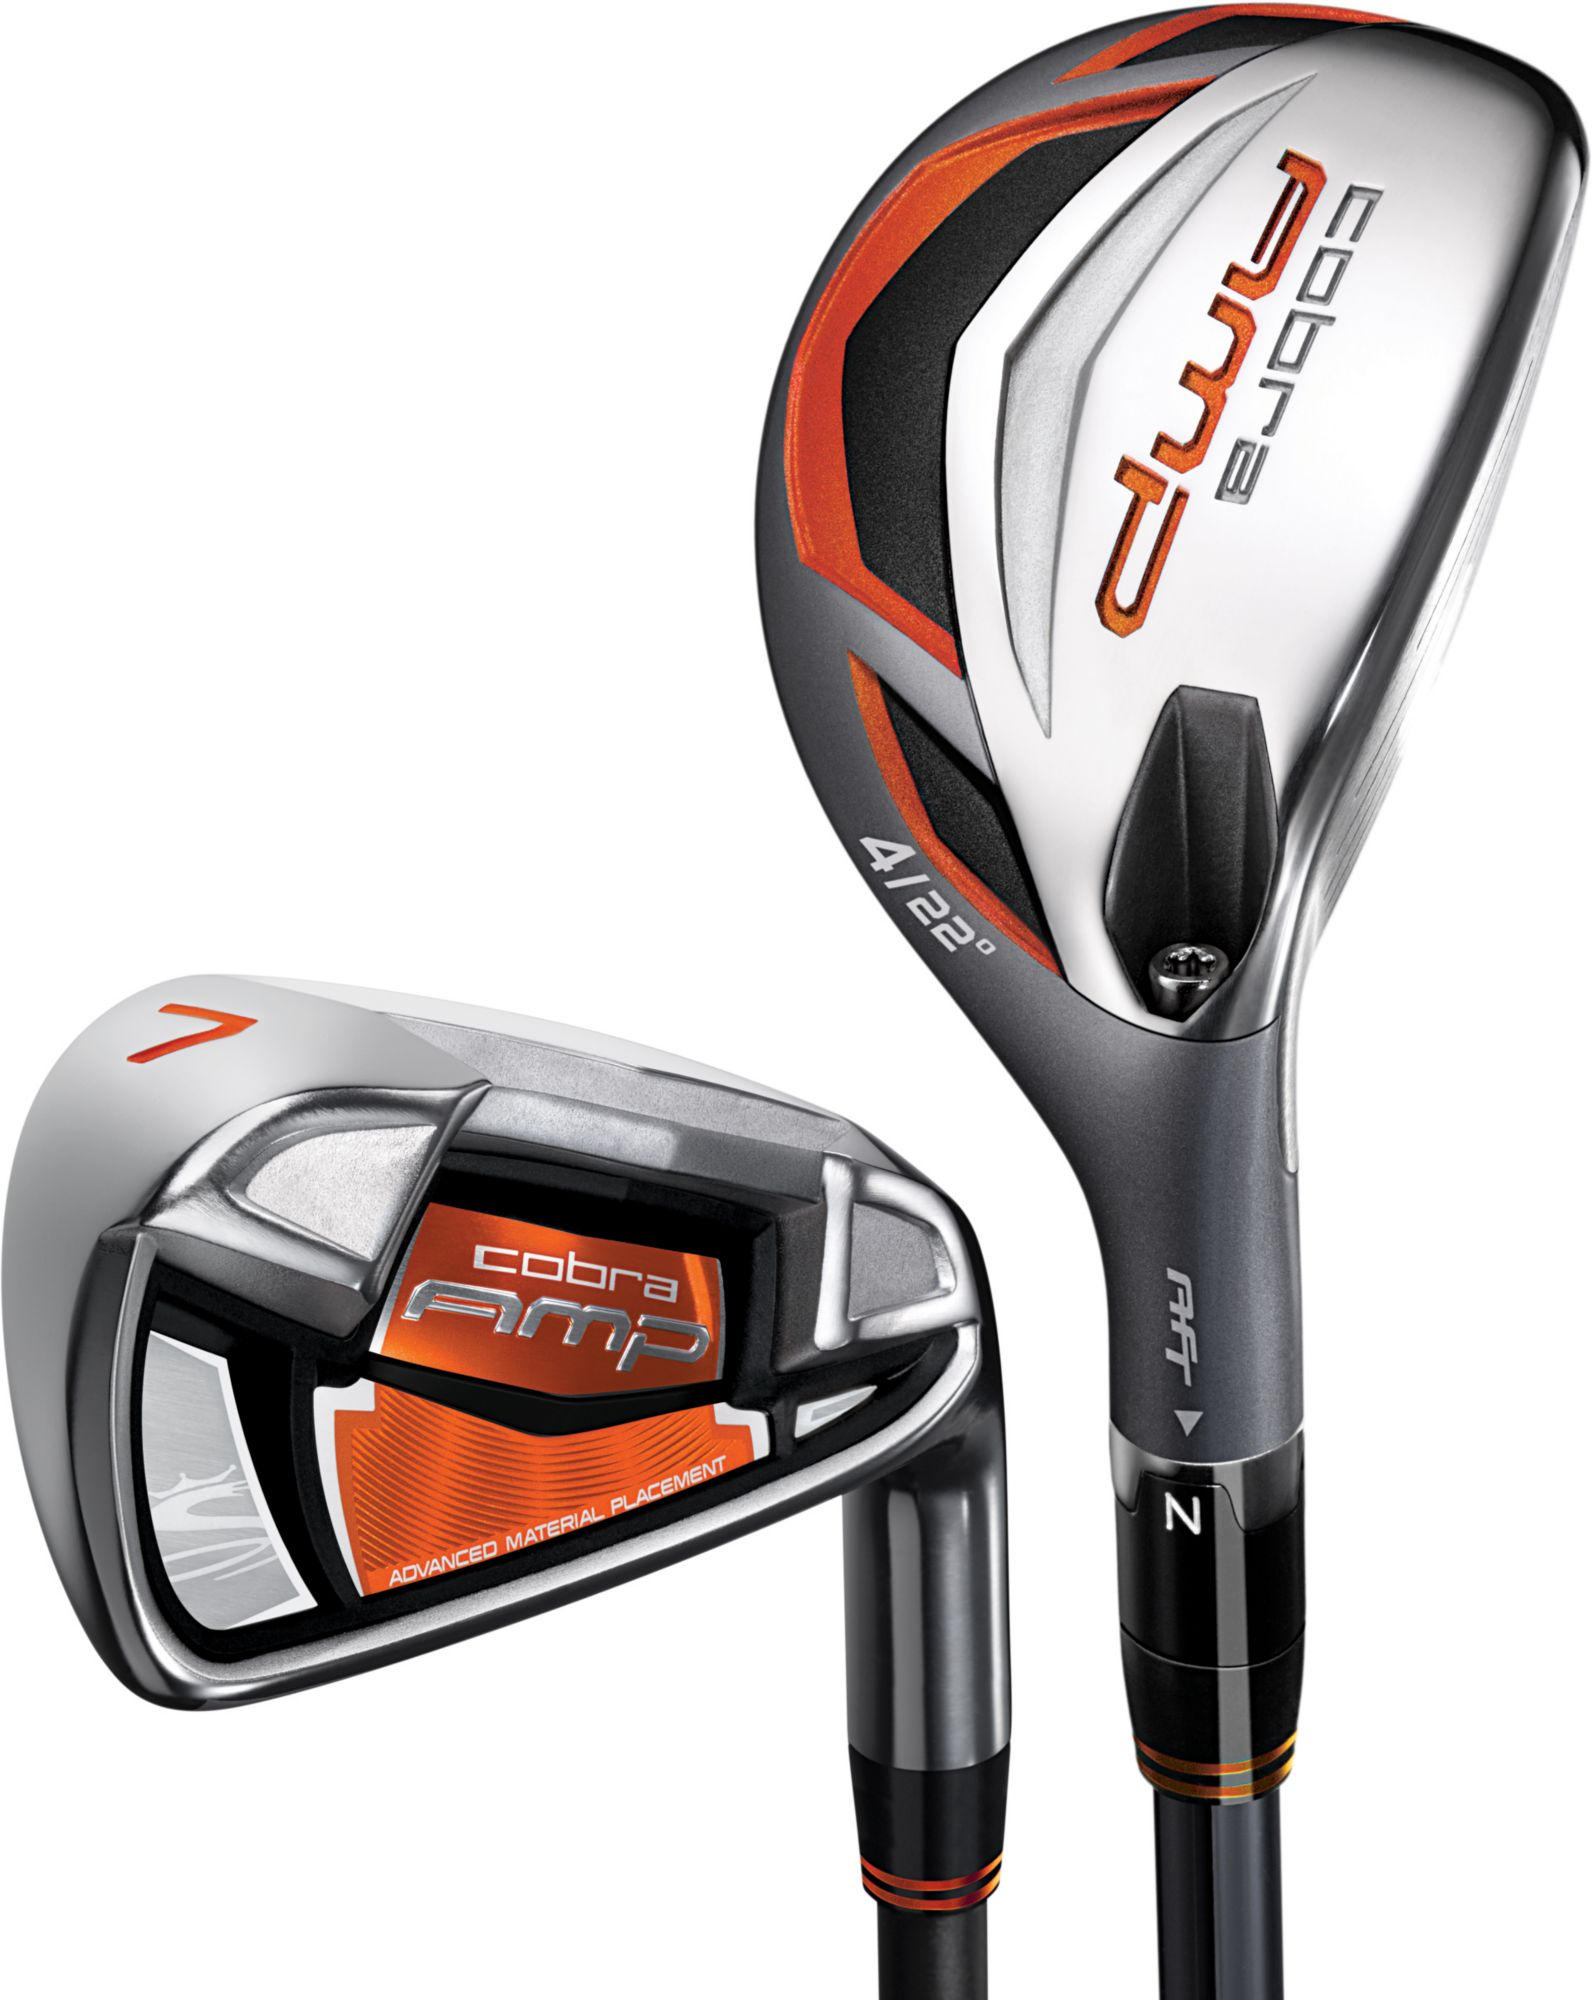 Cobra Men's AMP Hybrid/Irons - (Graphite) 3-4H, 5-PW